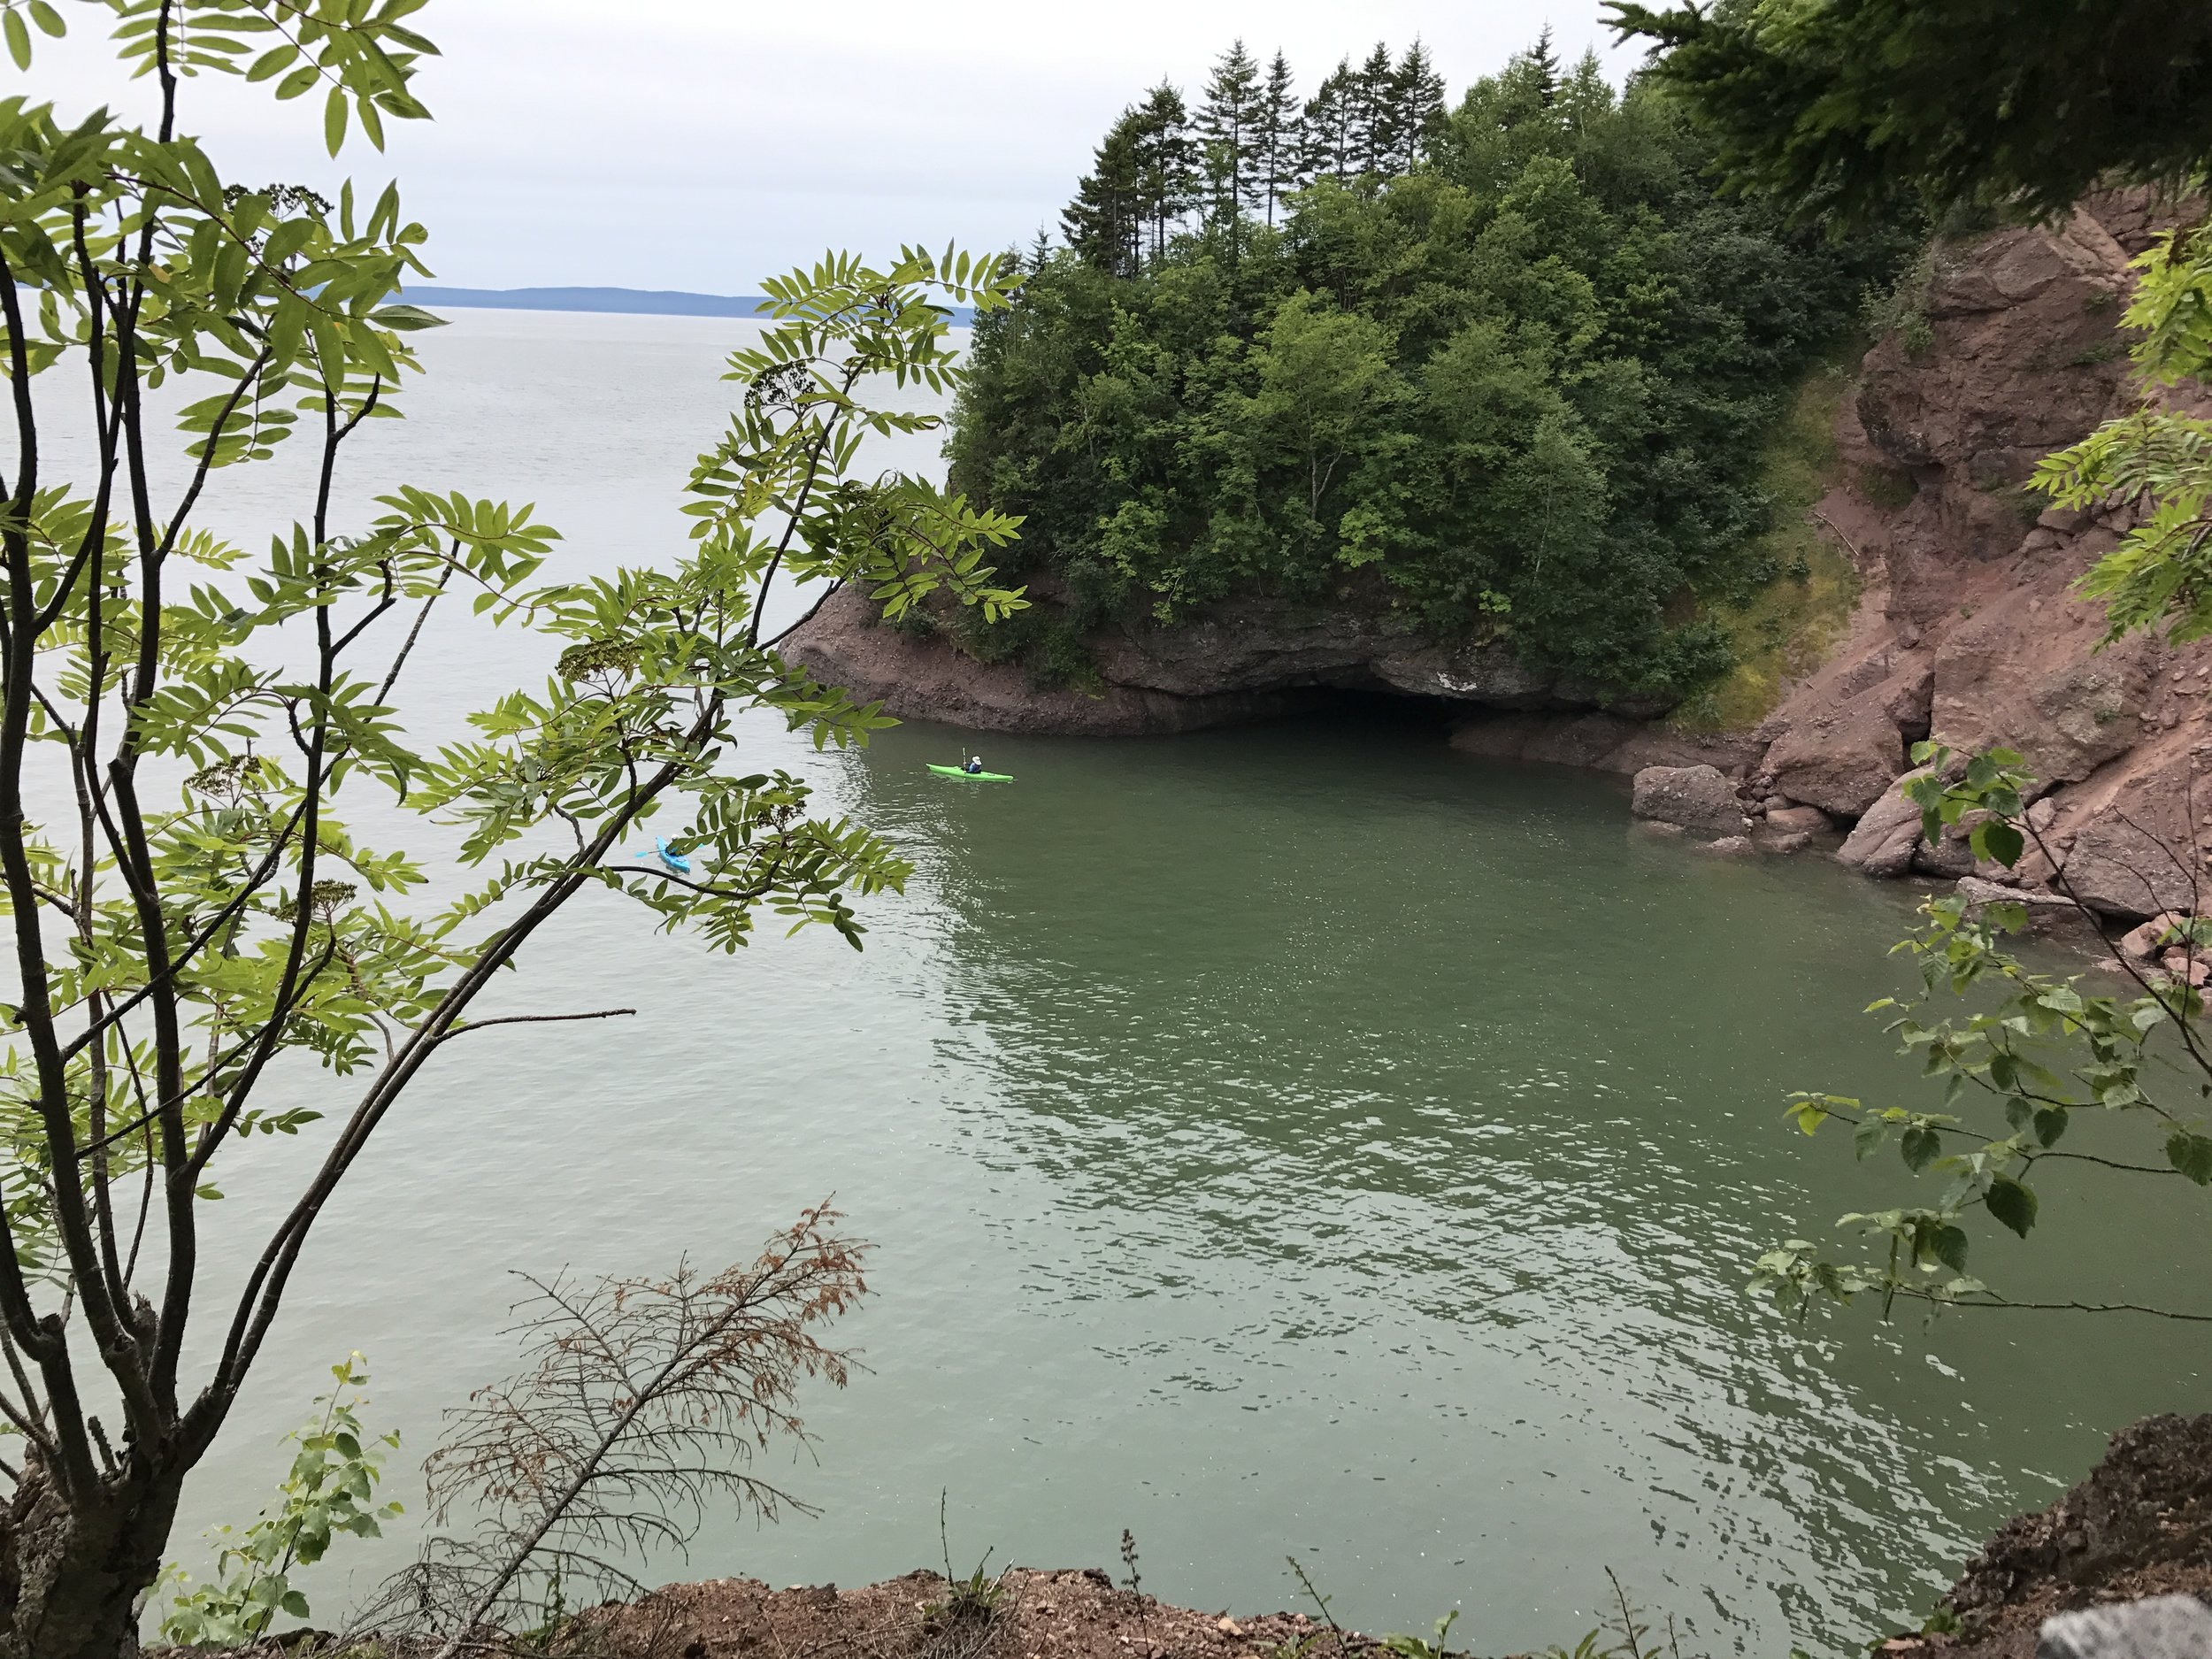 The view of the Bay of Fundy from Matthews Head Trail.